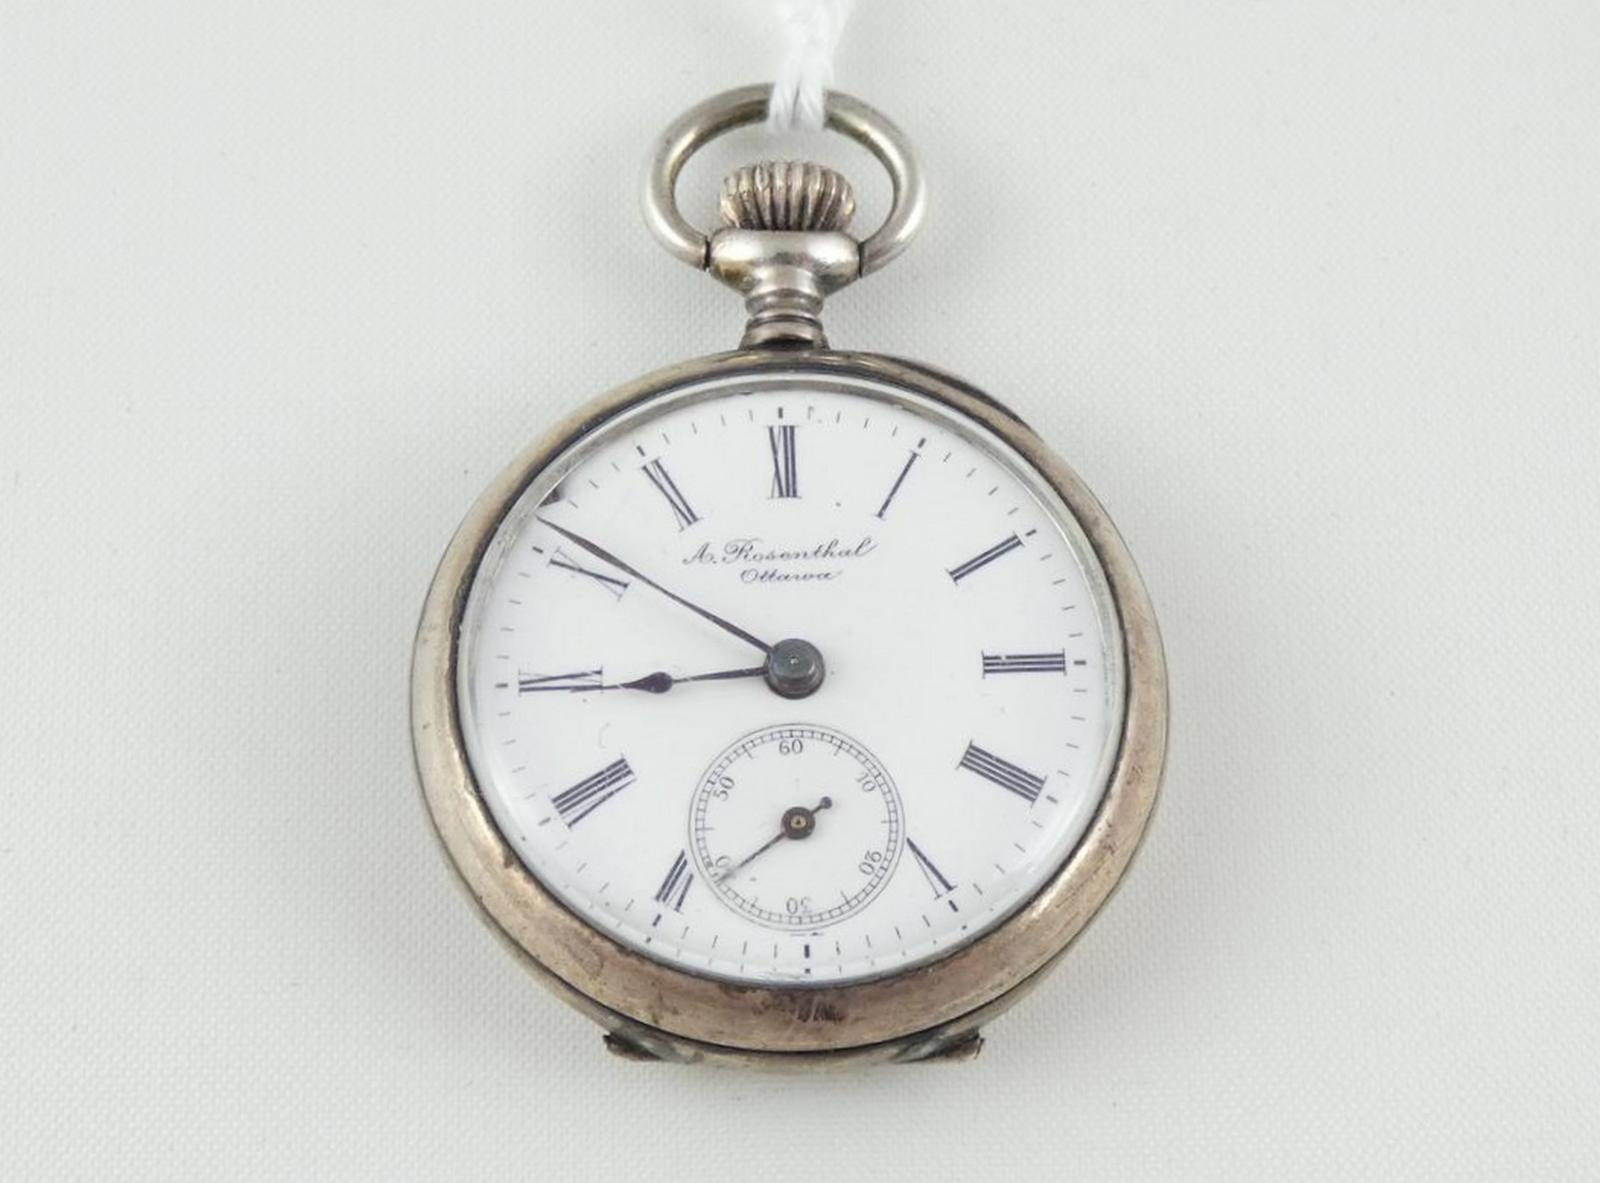 PENDANT/PURSE WATCH